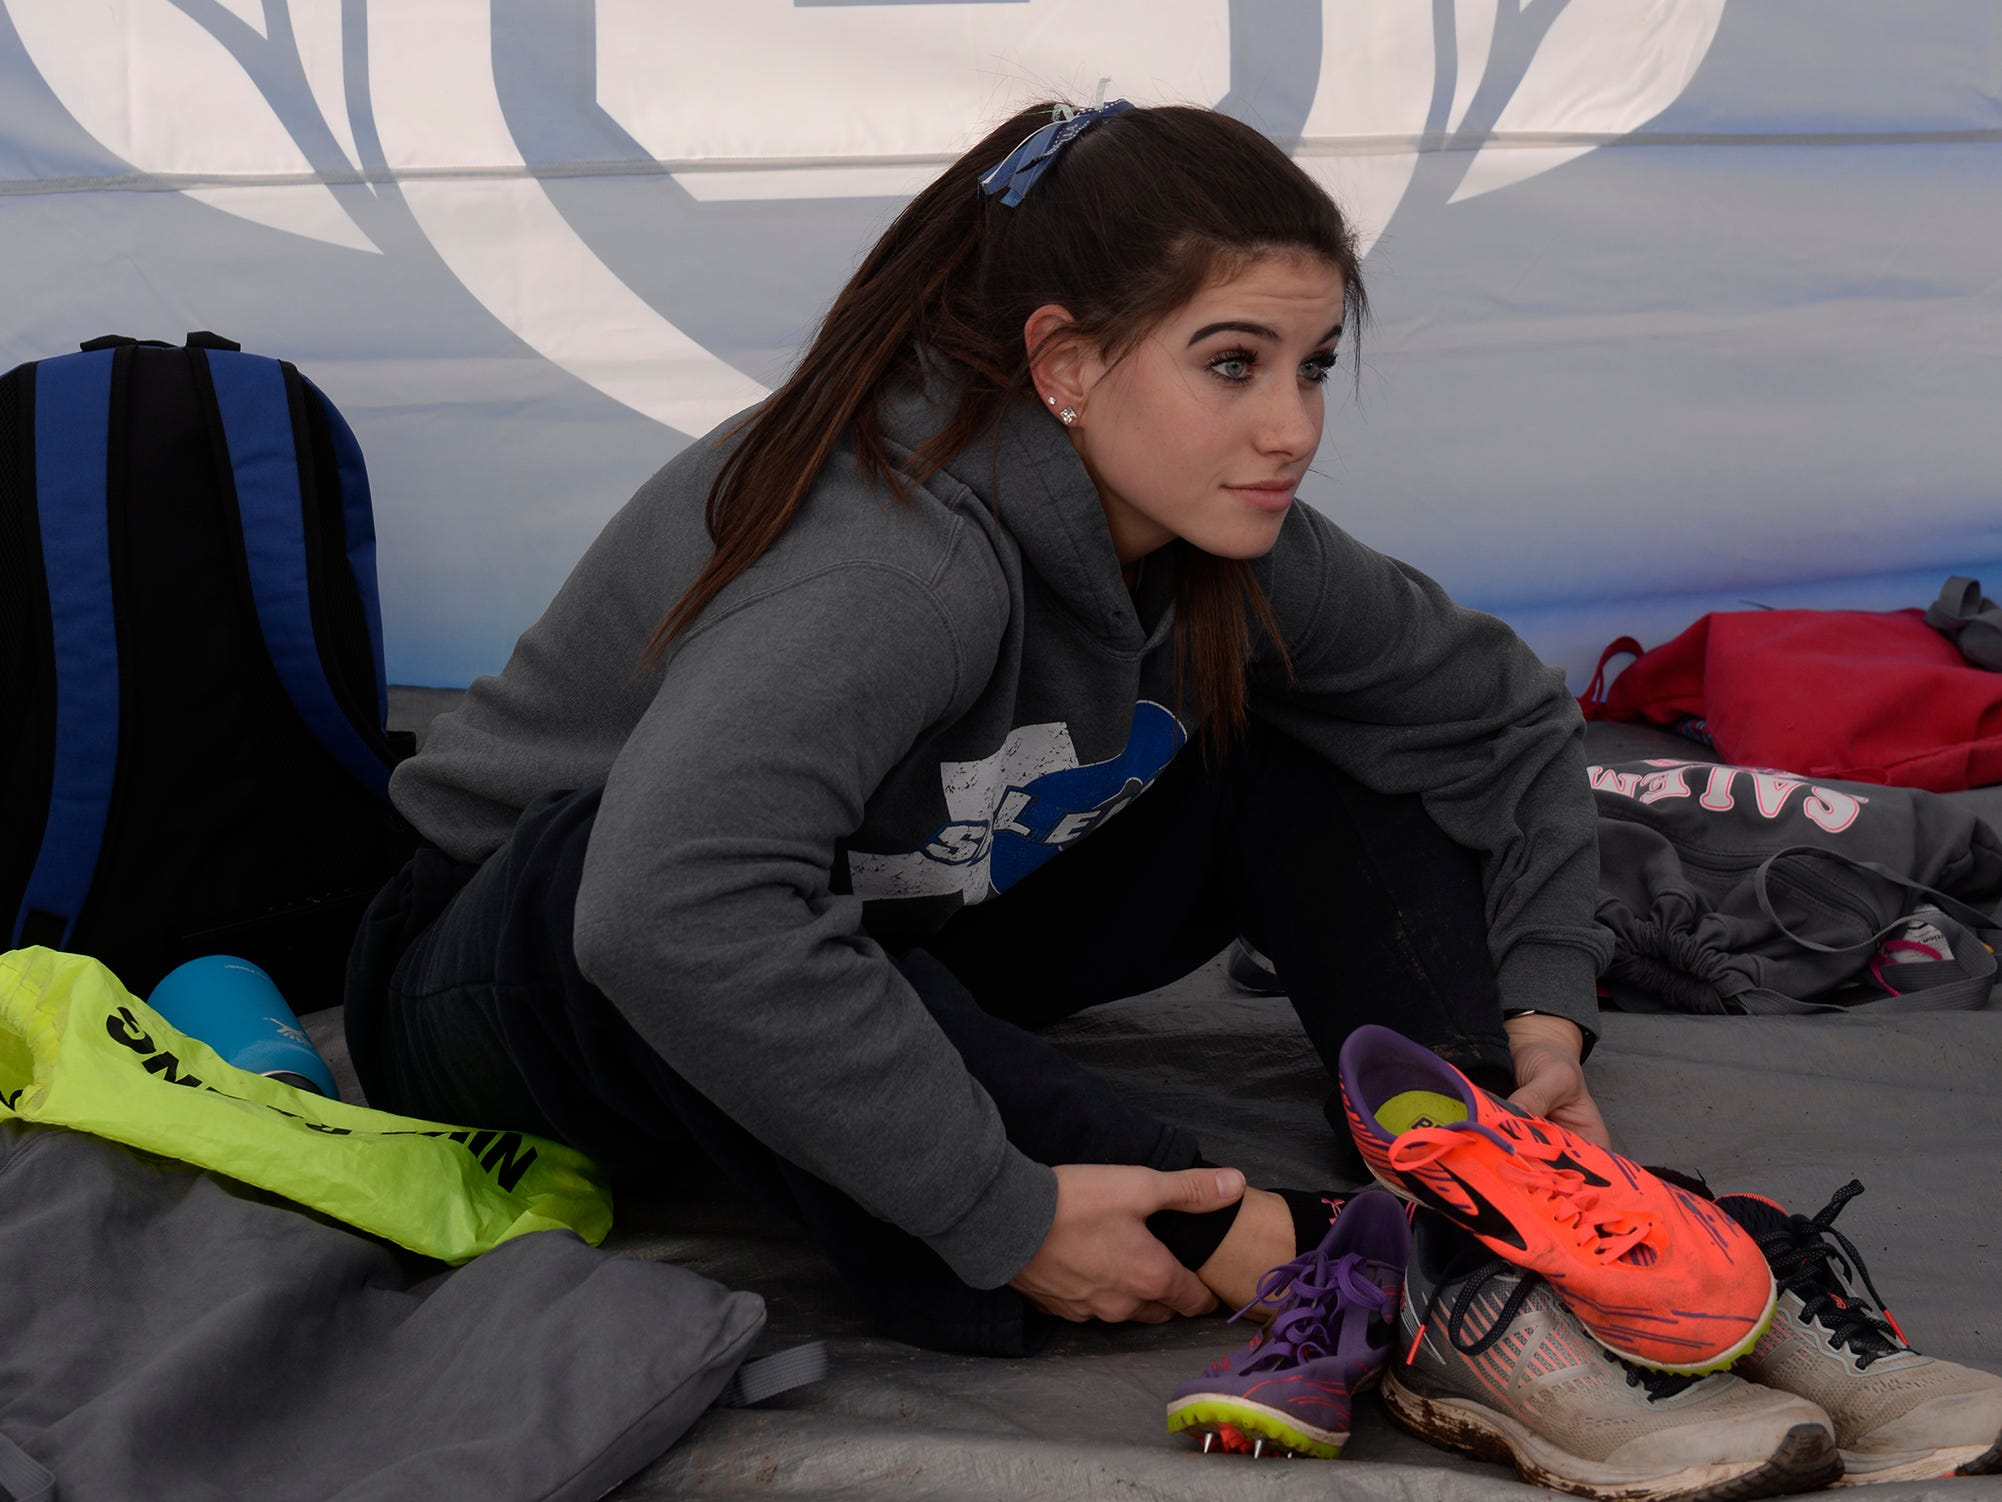 A Salem runner gets ready for the Division 1 2018 cross country finals at Michigan International Speedway.